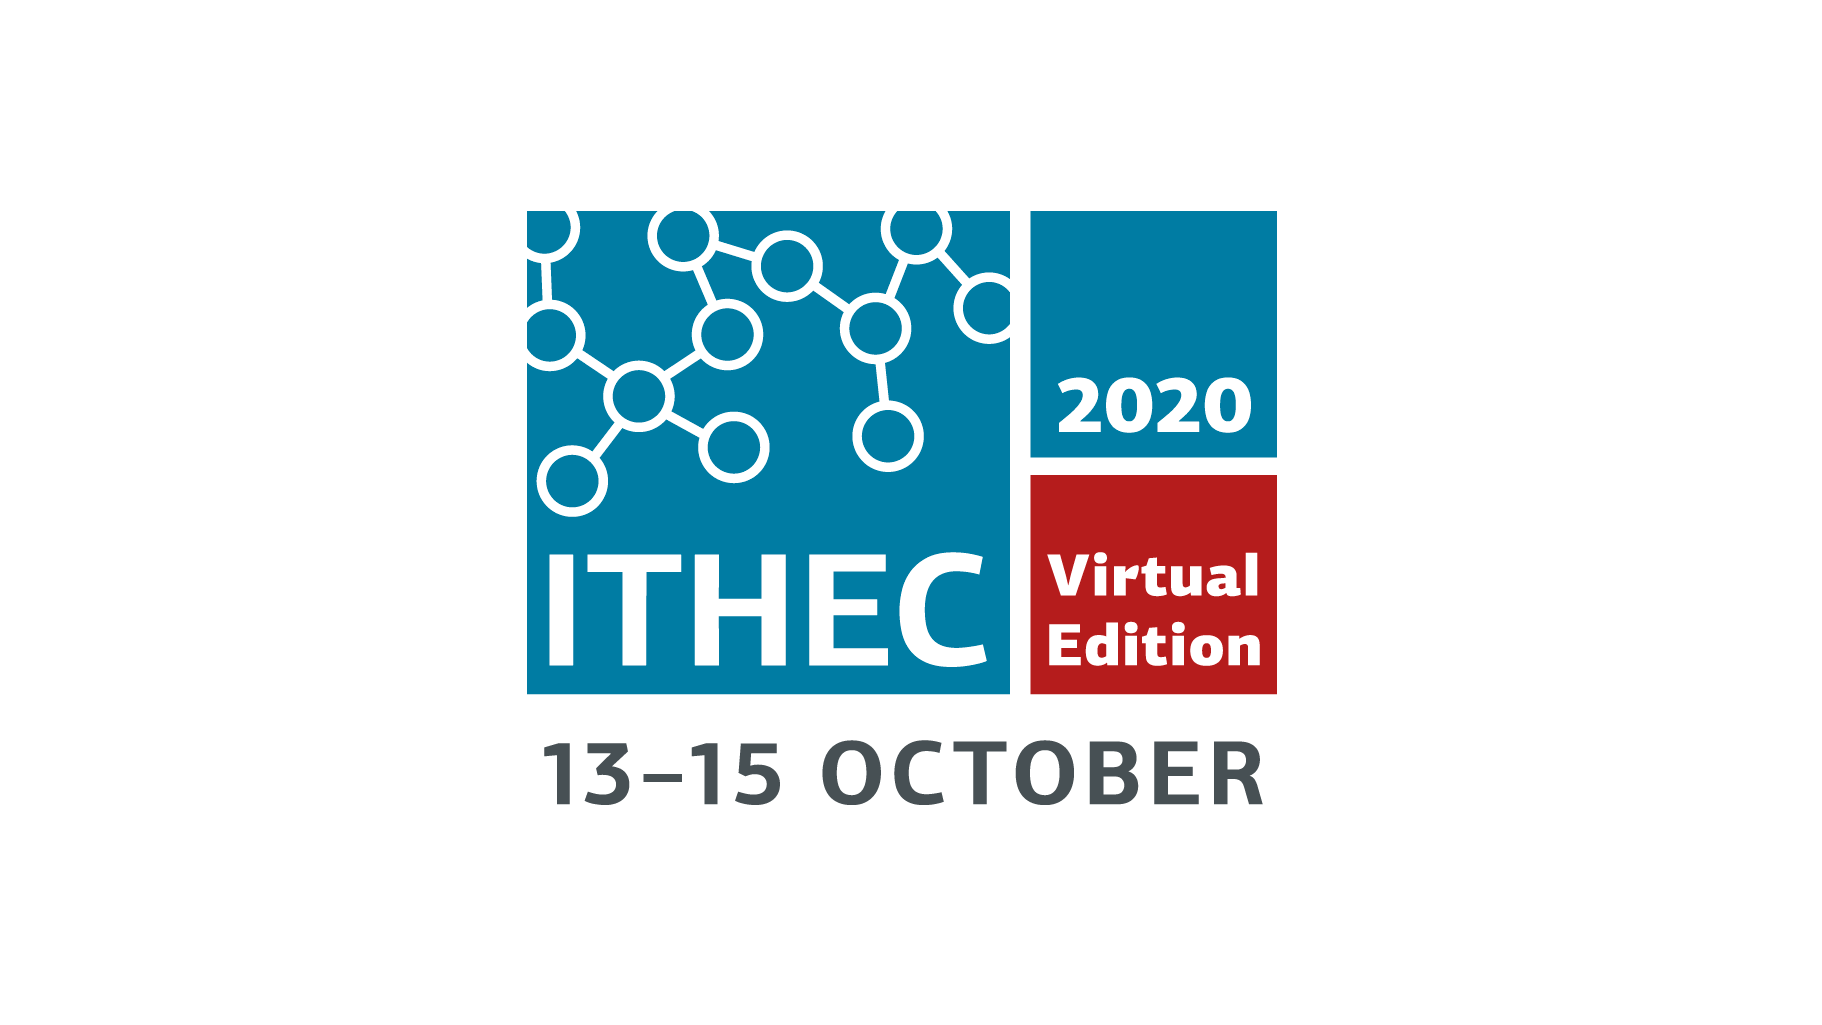 ITHEC_2020_Logo_16_9.2.png